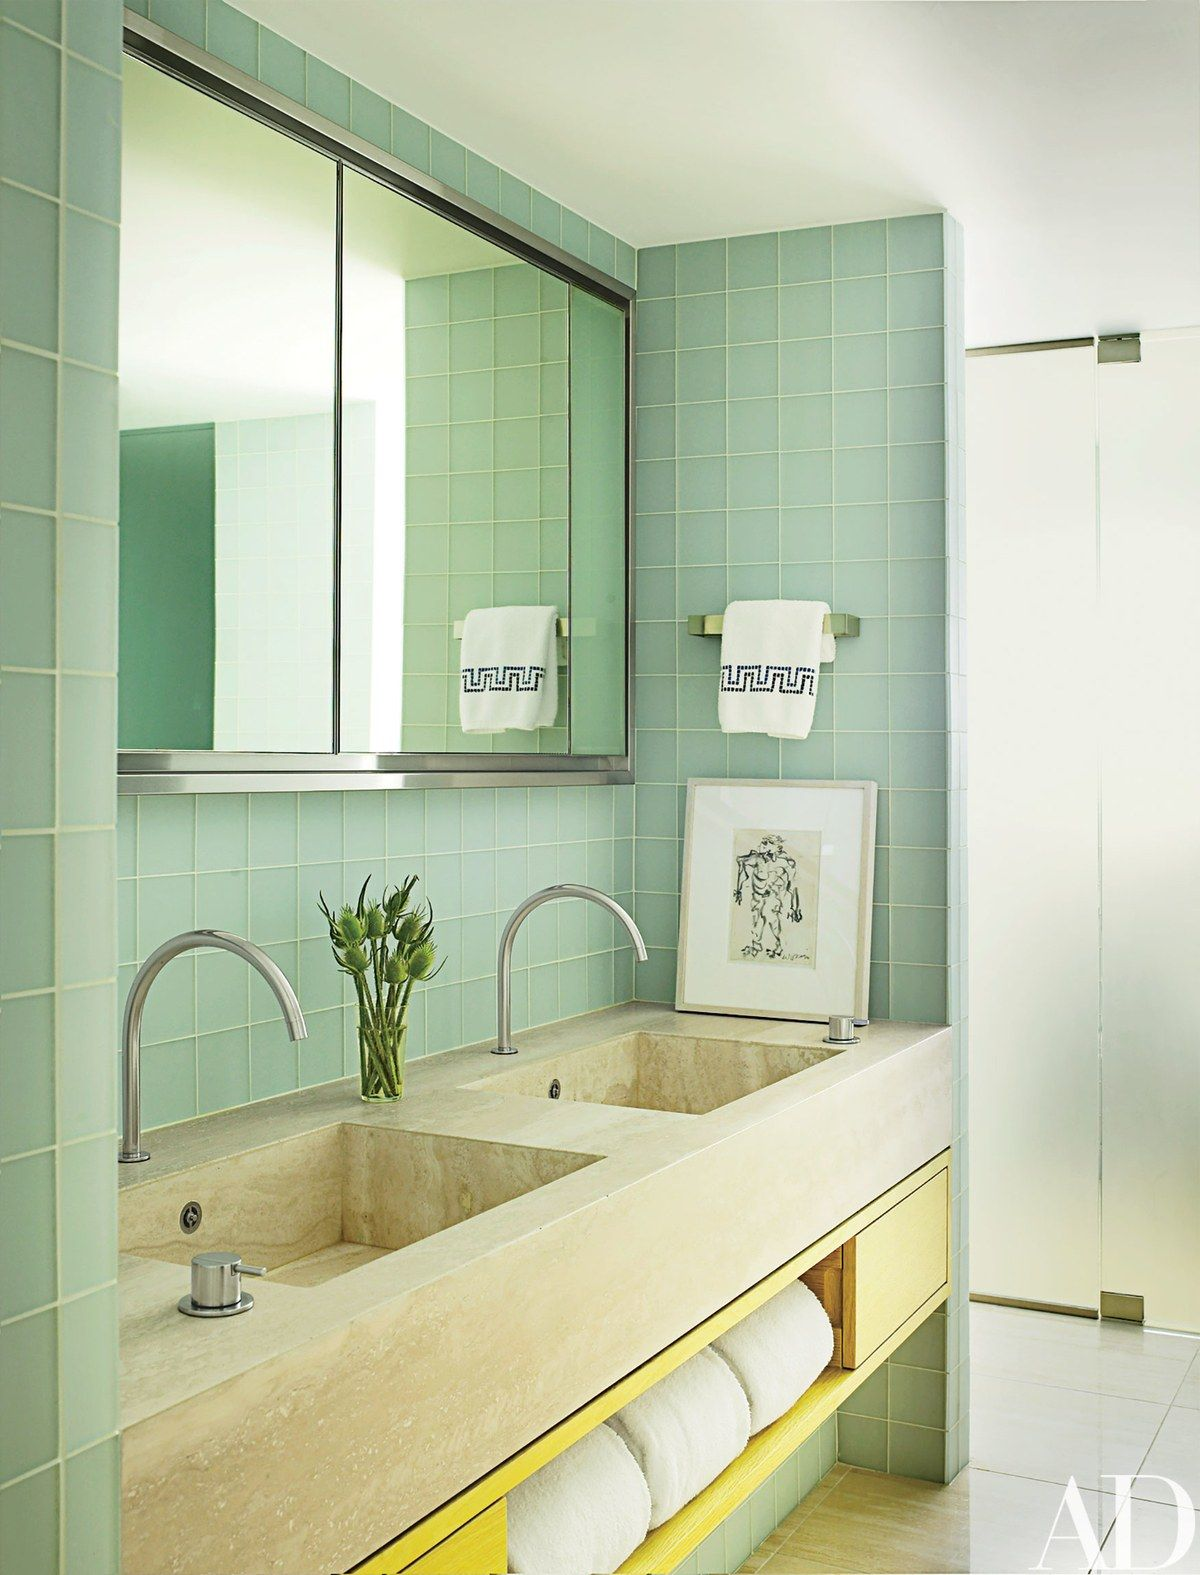 John Pawson Transforms A Gramercy Park Apartment Into A Coveted Minimalist Retreat Architectural Digest Green Bathroom Green Tile Bathroom Mint Green Bathrooms Minimalist green bathroom interior